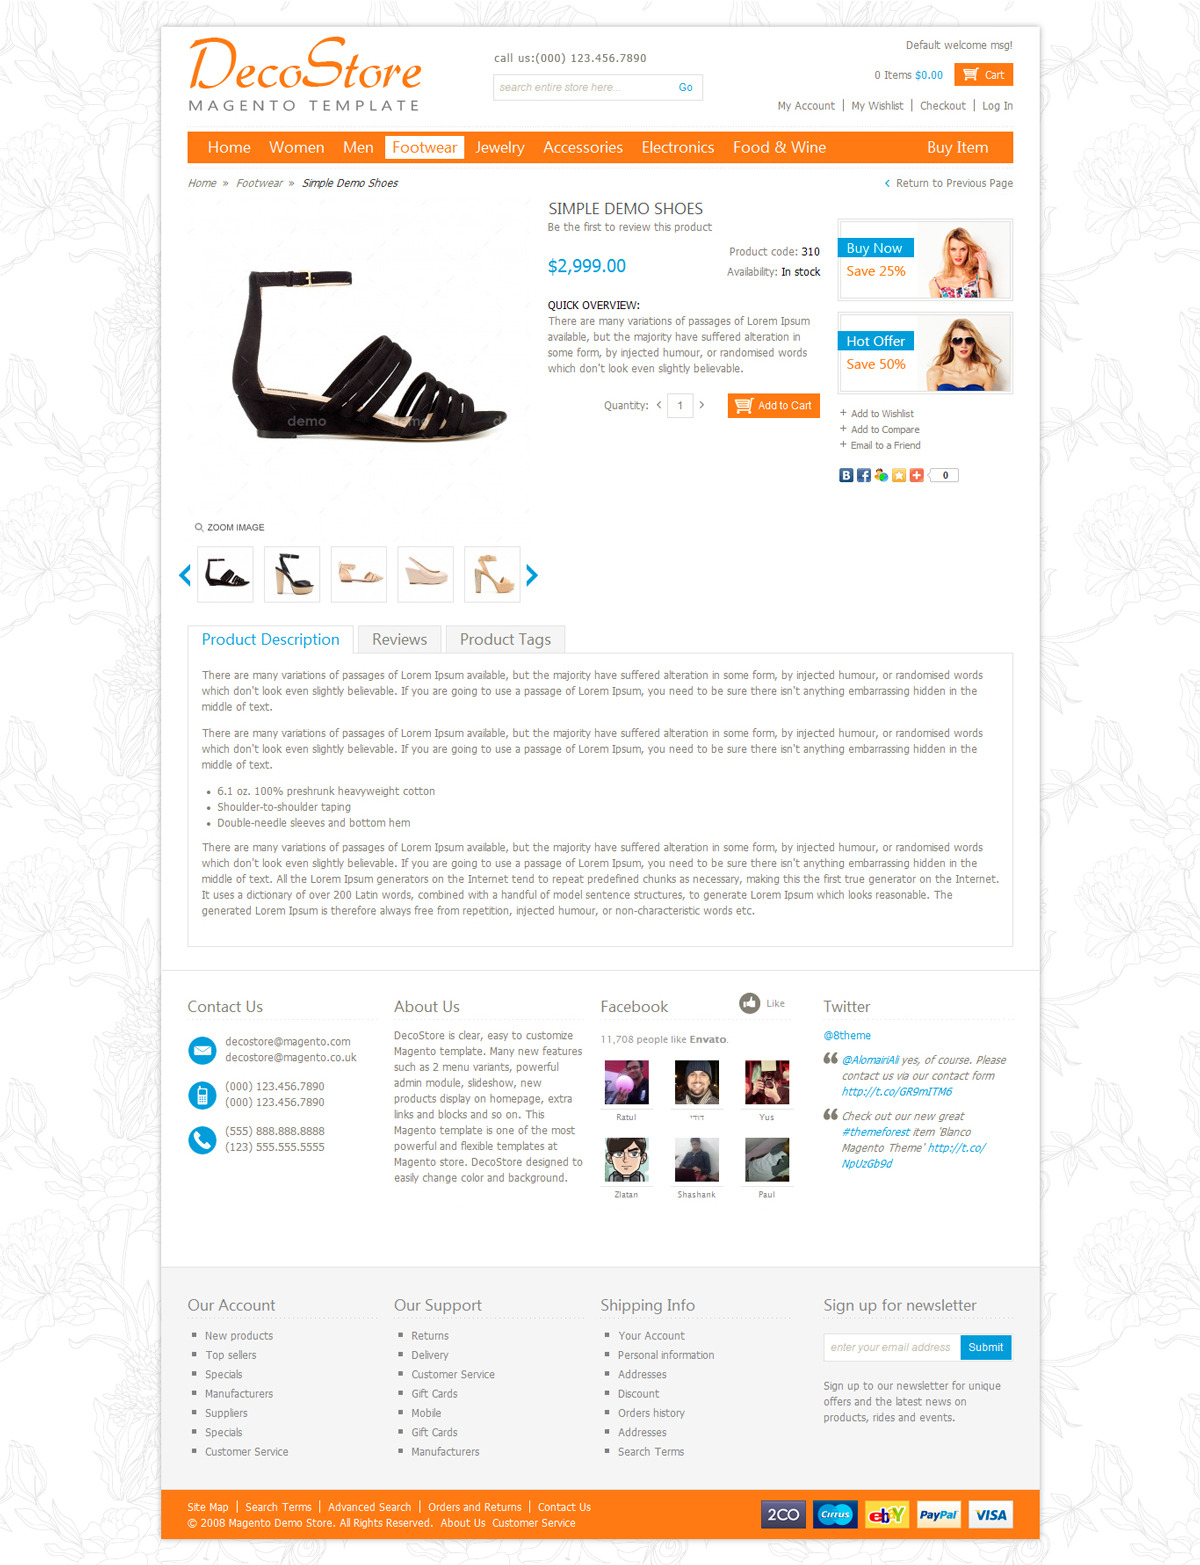 DecoStore-Best-Magento-Online-Store-Template